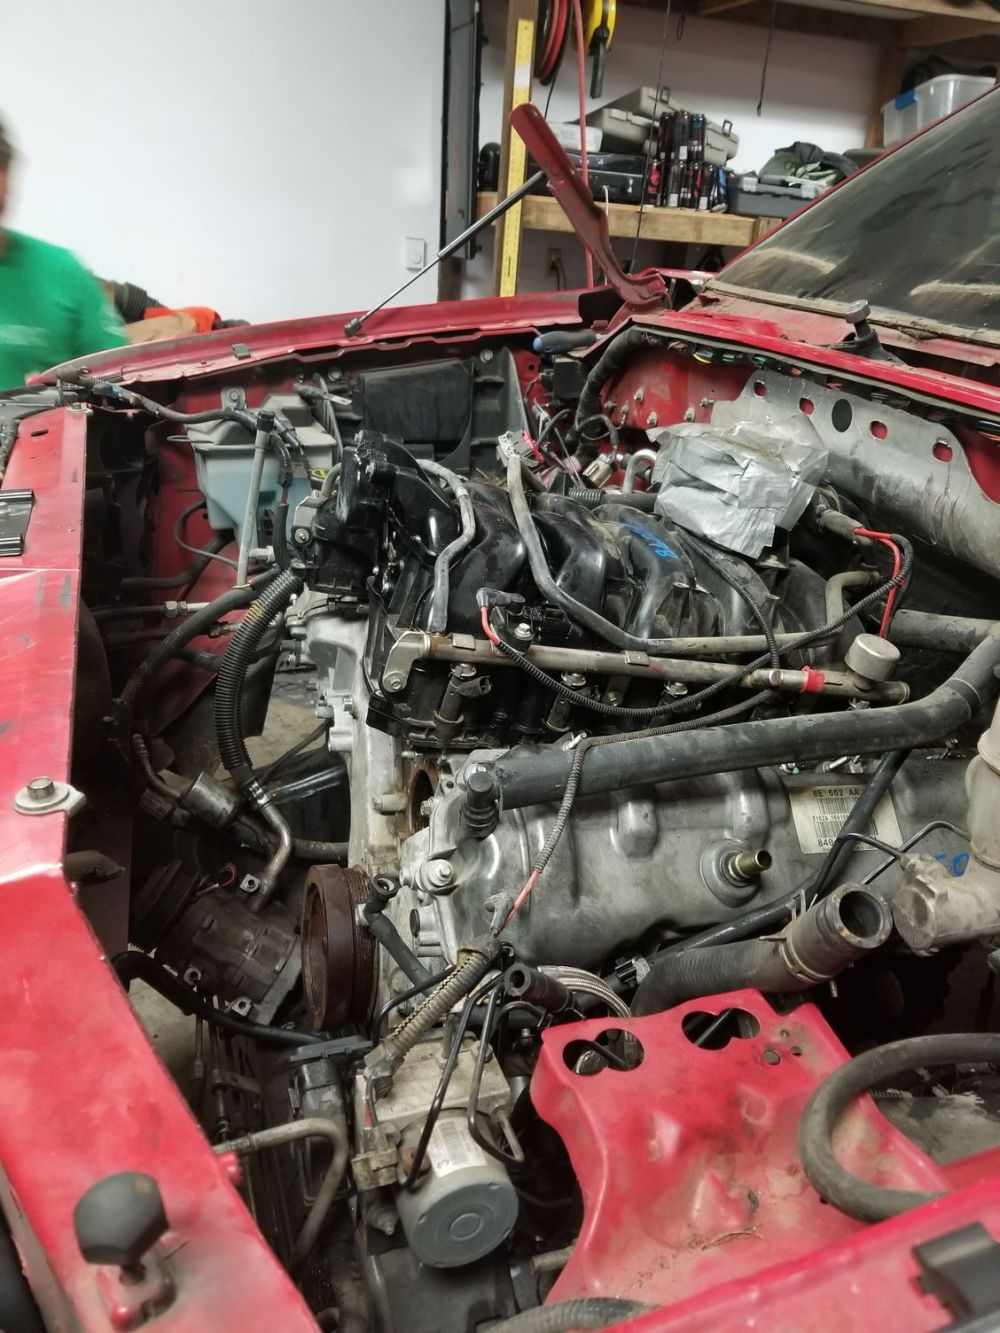 medium resolution of  heater tube wiring harness exhaust manifolds studs and valve covers tilt it almost vertically and drag it across the core support but it s in